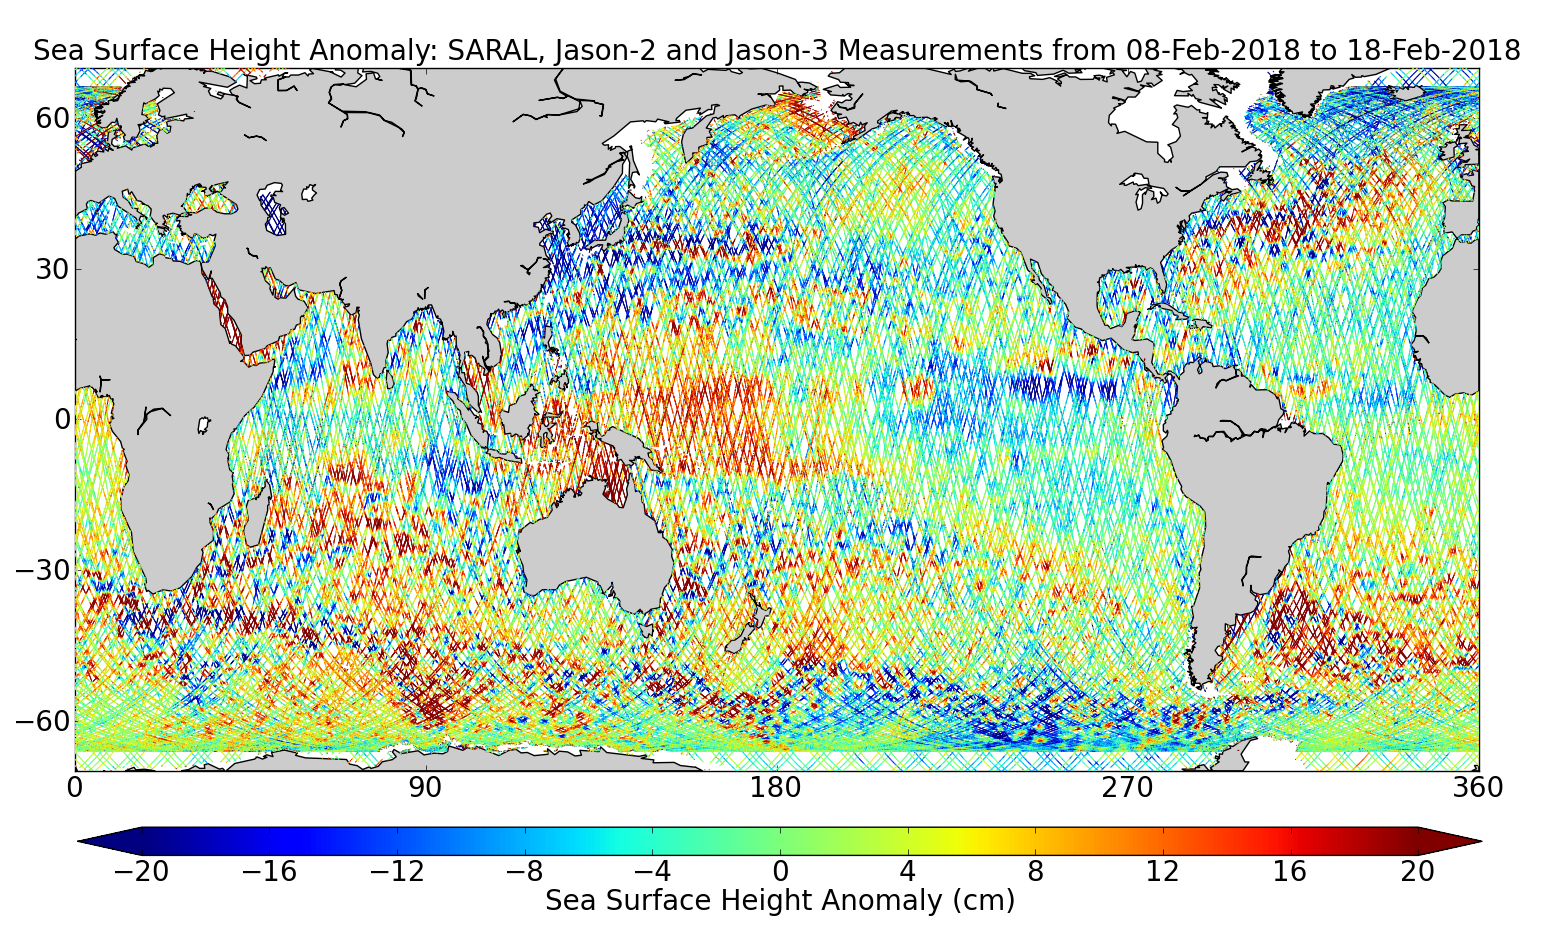 Sea Surface Height Anomaly: SARAL, Jason-2 and Jason-3 Measurements from 08-Feb-2018 to 18-Feb-2018